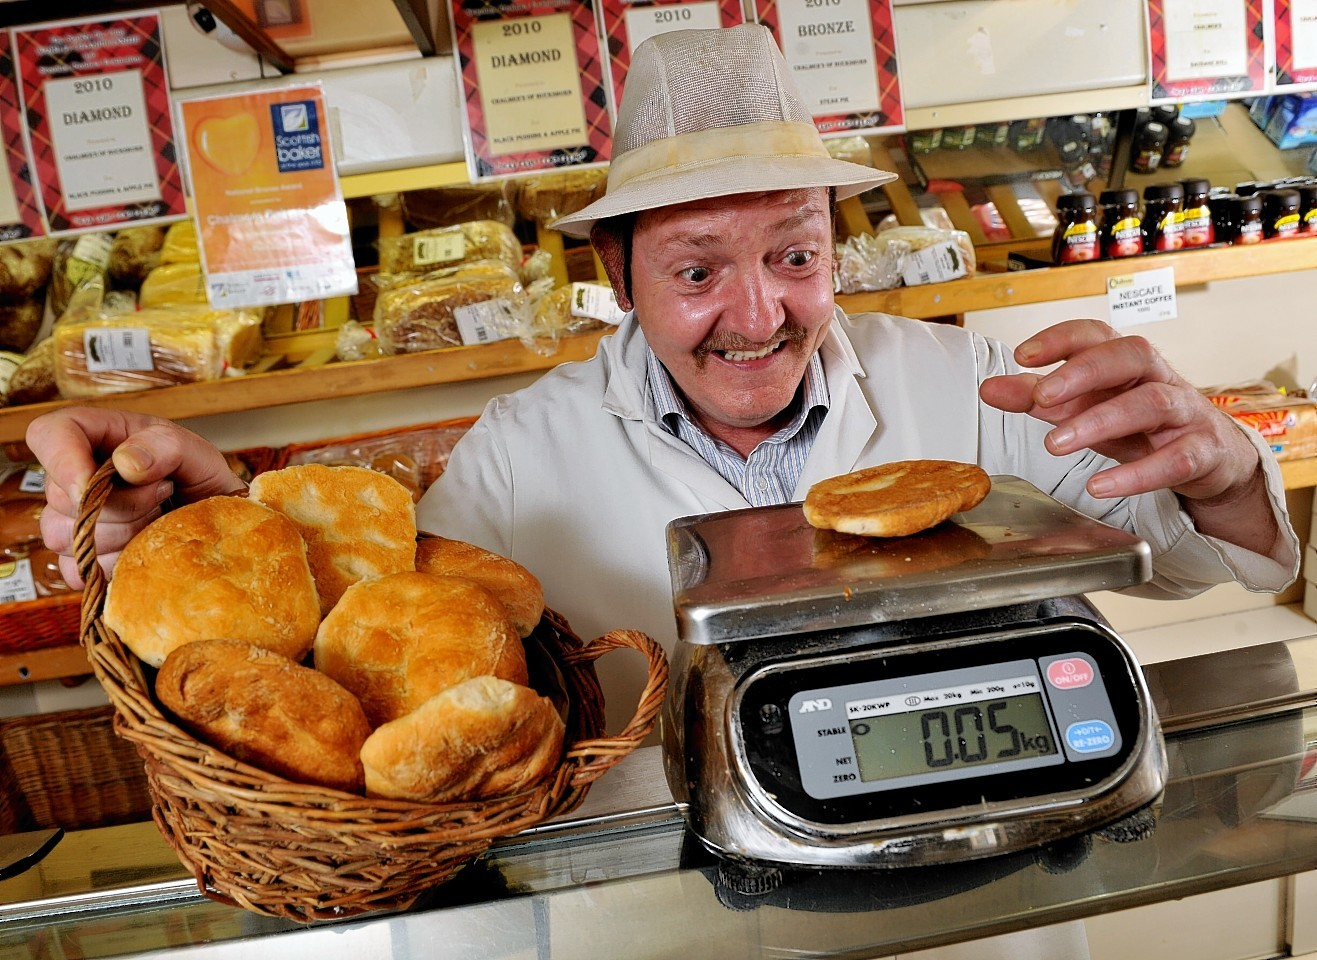 Chalmer's baker weighs up its Rowies